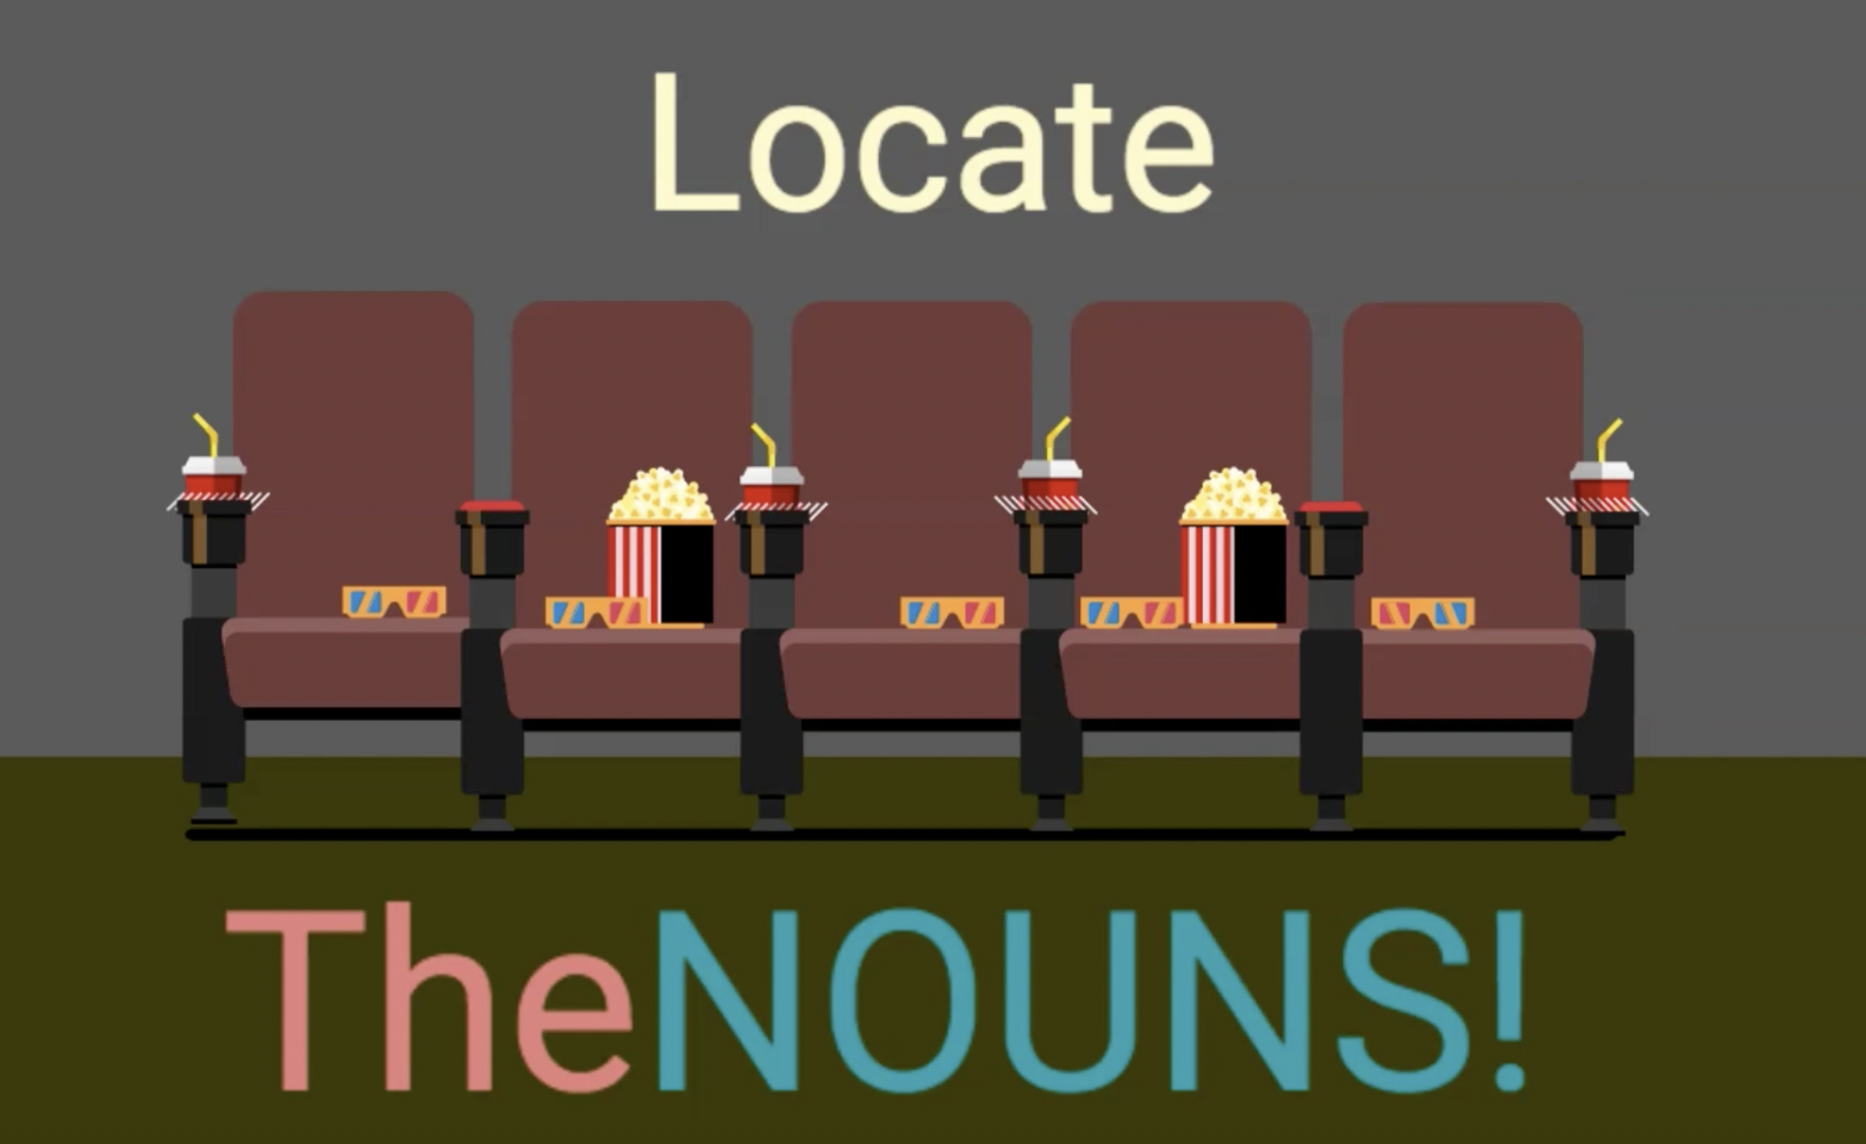 Locate the Nouns - Cartoon in an empty movie theater